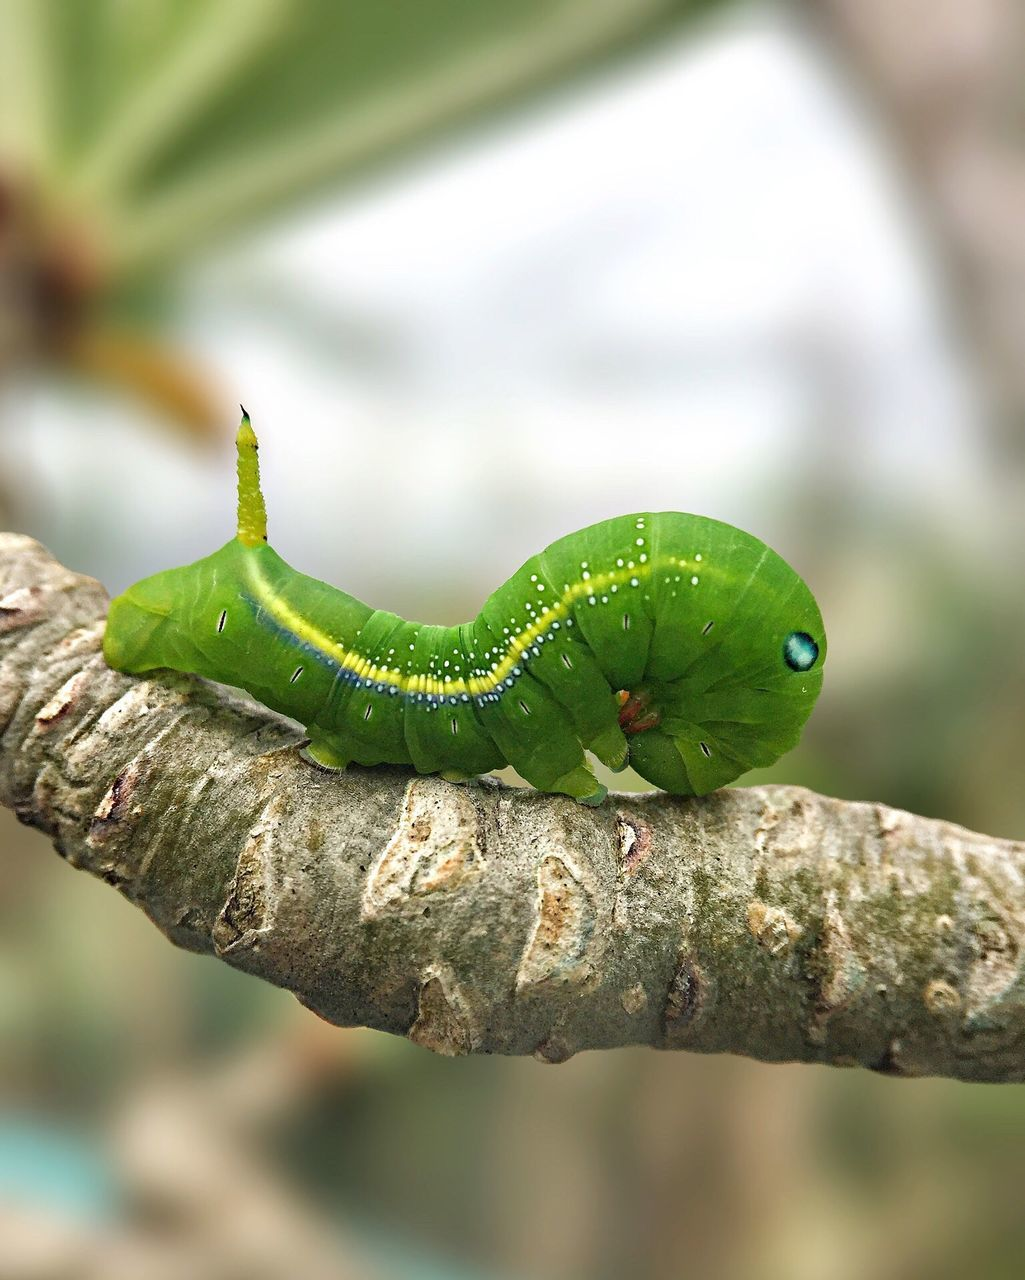 one animal, animal themes, animals in the wild, animal wildlife, reptile, green color, focus on foreground, close-up, lizard, day, chameleon, no people, outdoors, nature, insect, branch, slug